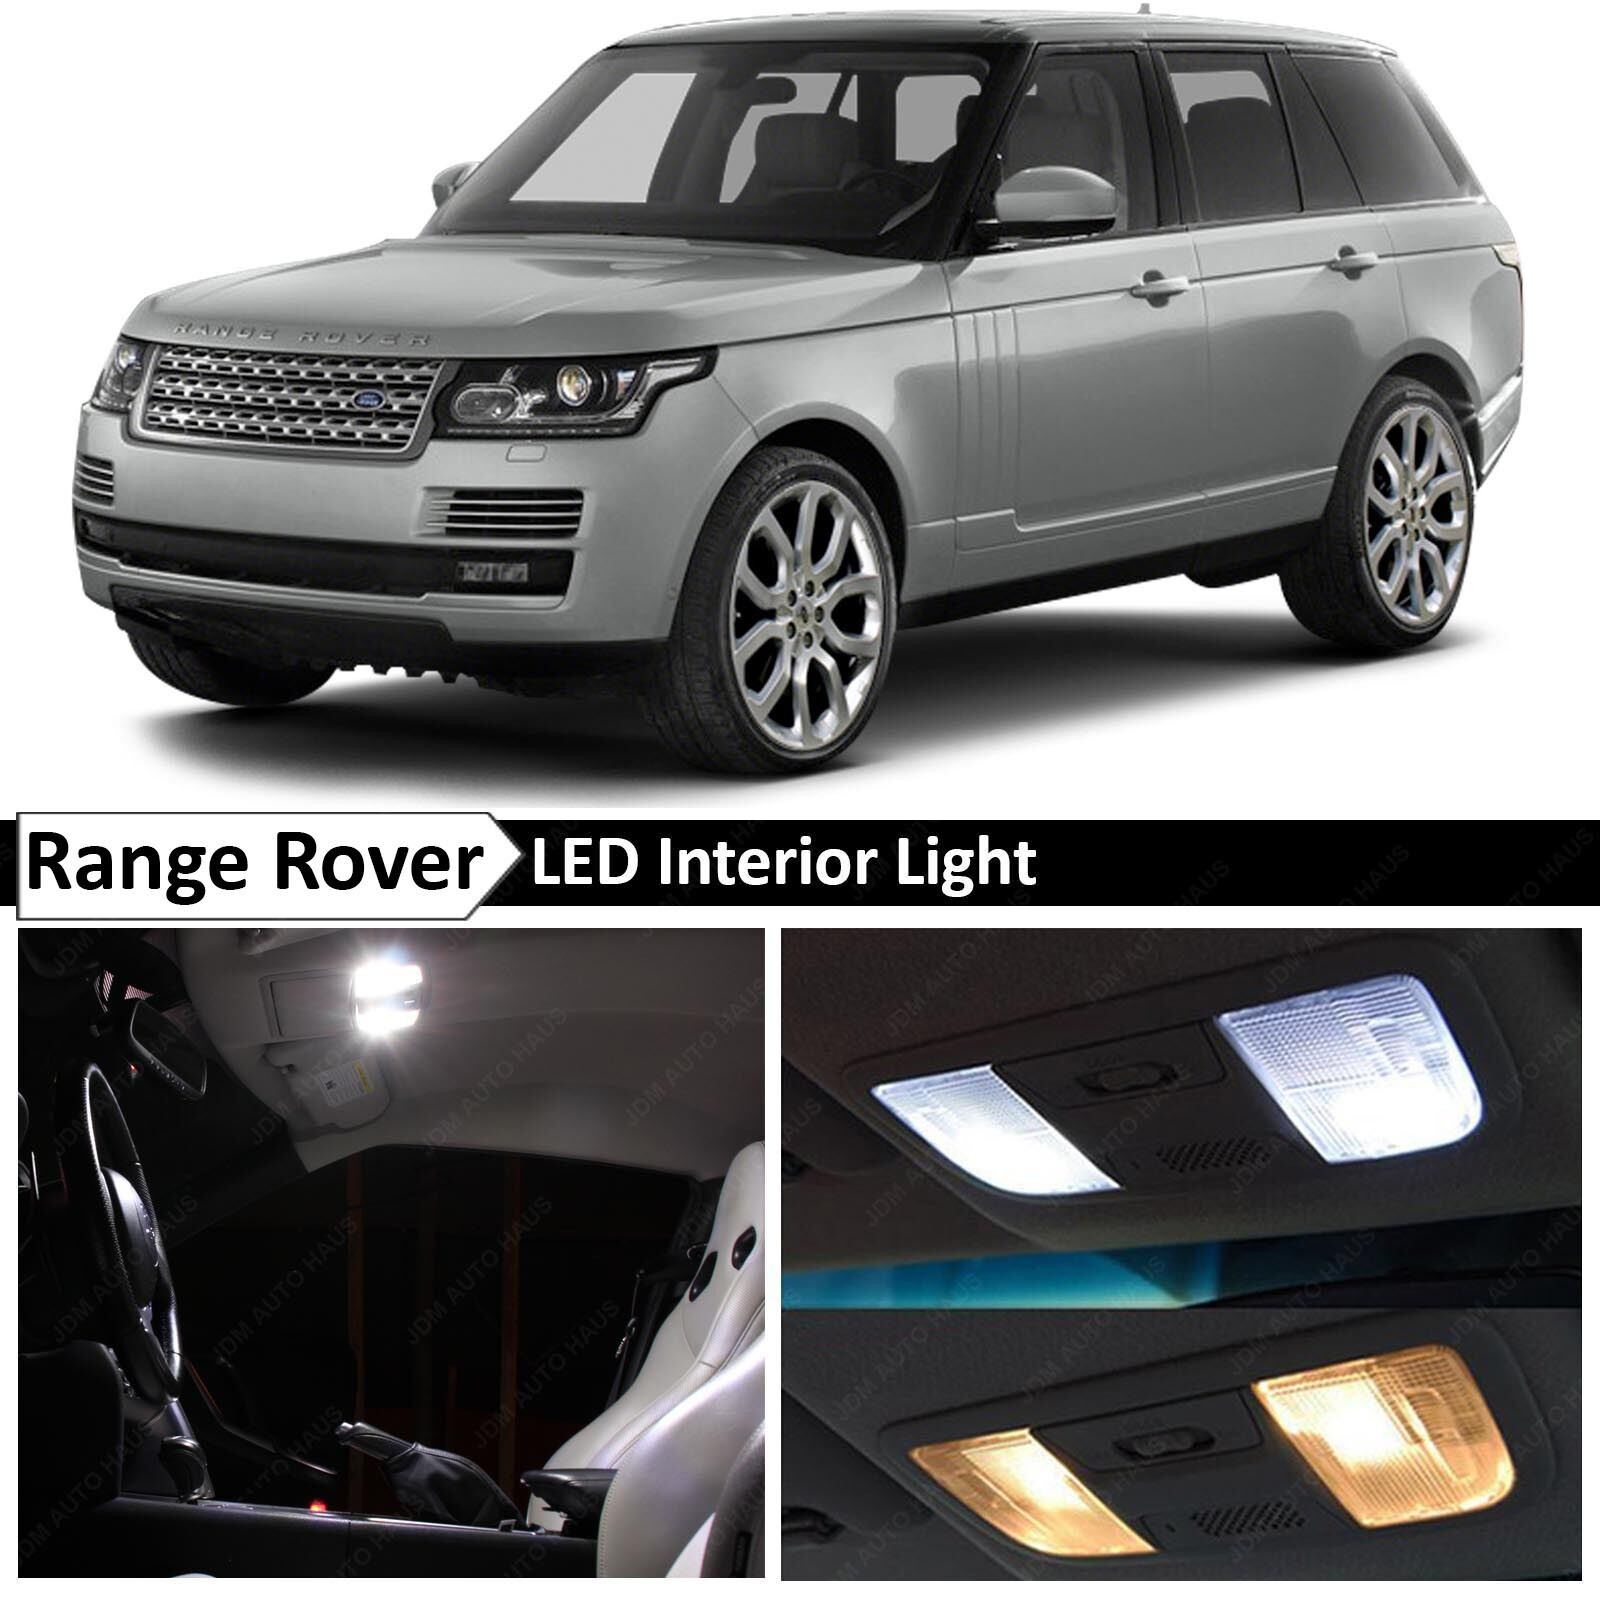 2002 Land Rover Range Rover Interior: 24x White LED Lights Interior Package 2006-2013 Land Rover